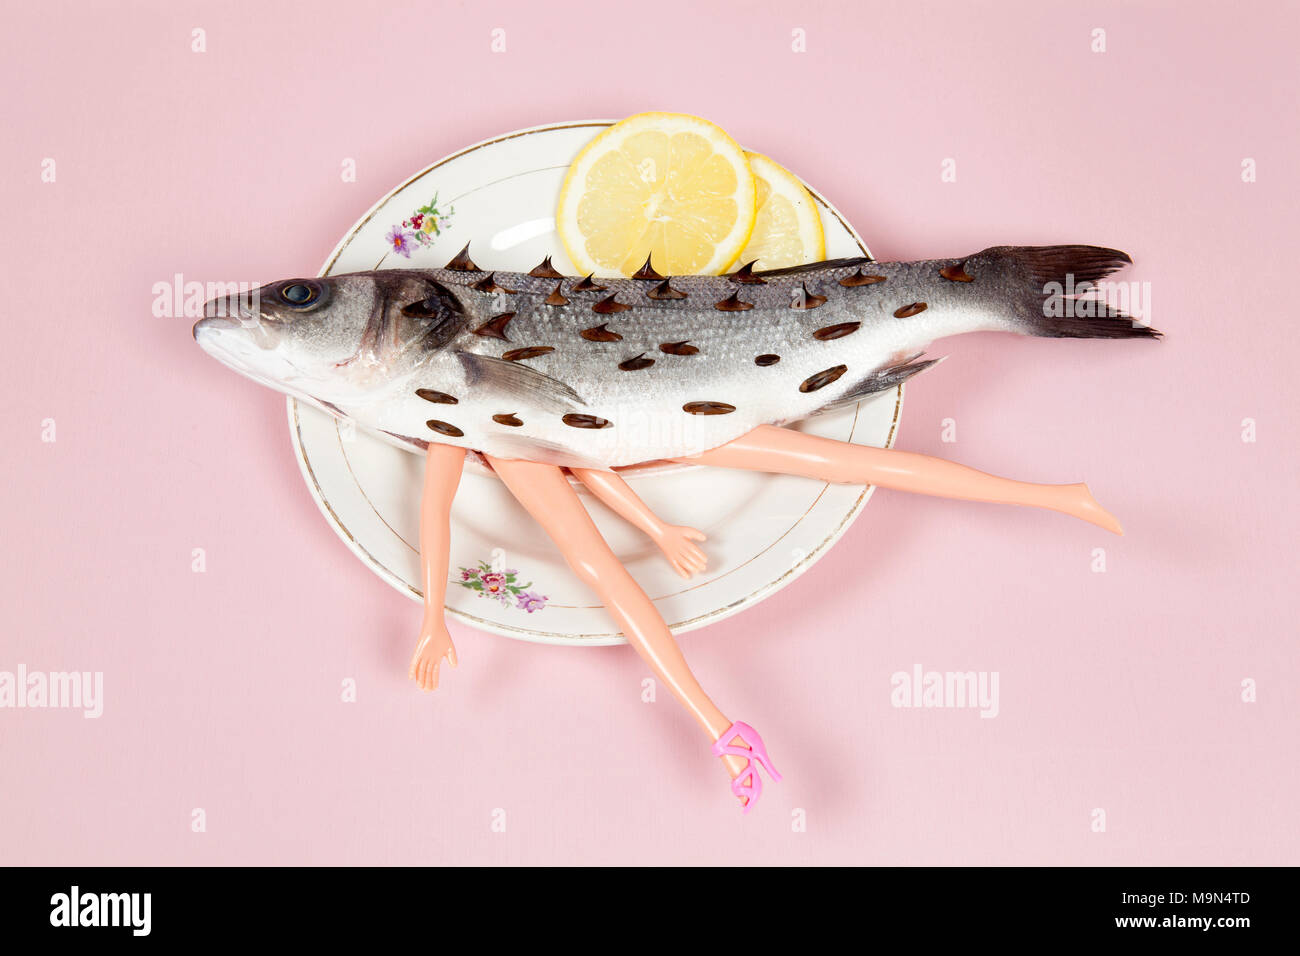 Fish legs stock photos fish legs stock images alamy a bass fish with arms and legs of a doll inside on a flower plate biocorpaavc Gallery